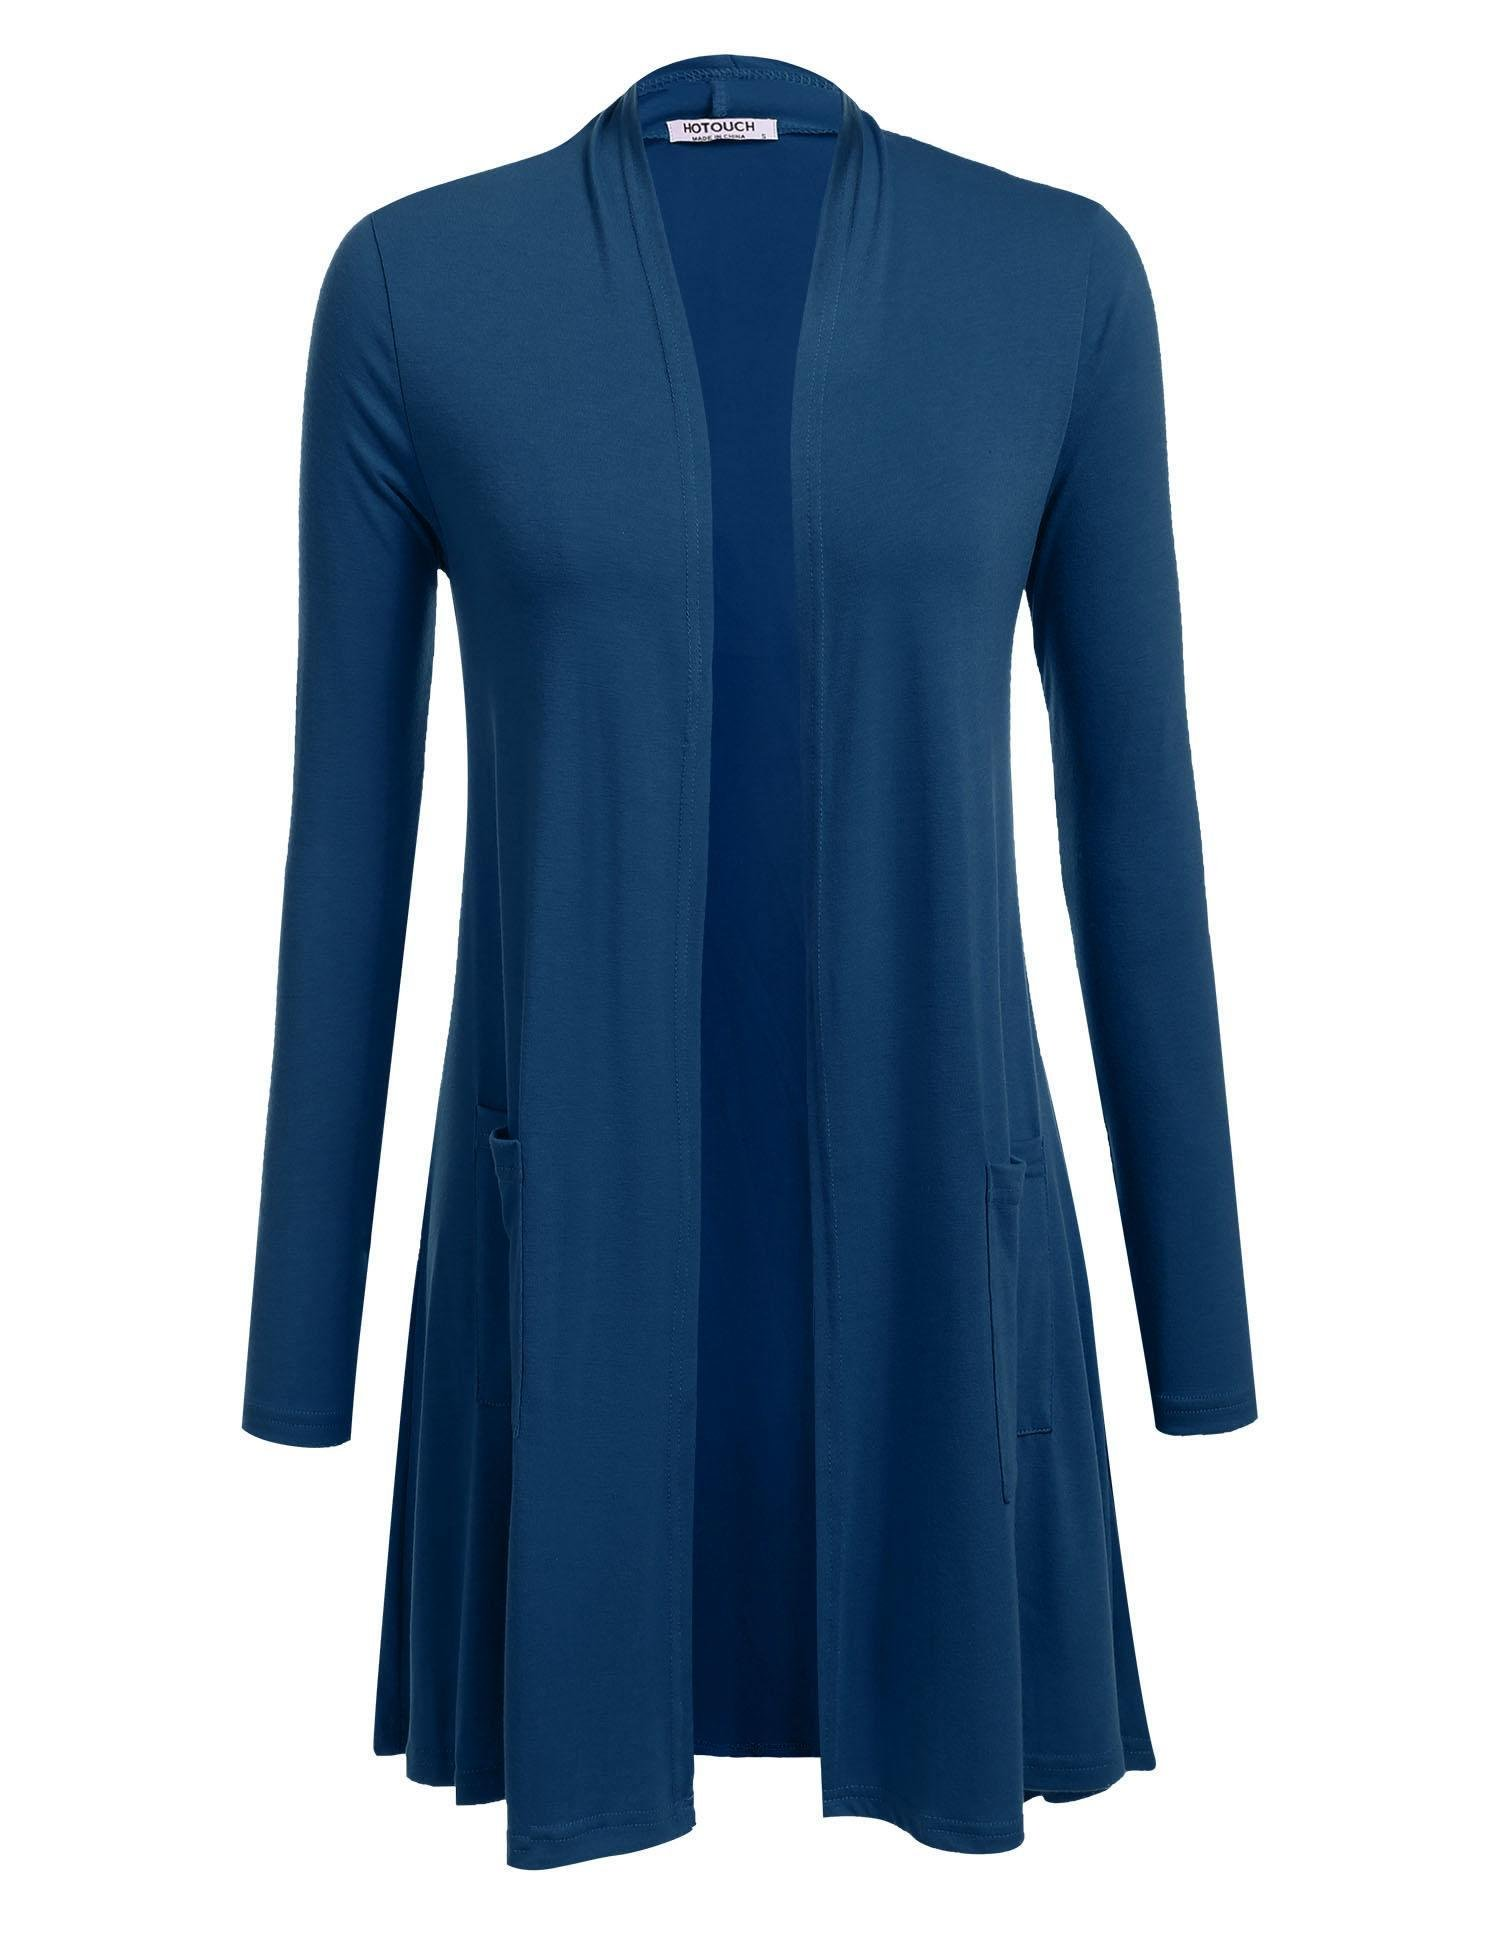 Hotouch Women's Boyfriend Pocket Cardigan Jersey Shrug Peacock Blue XXL